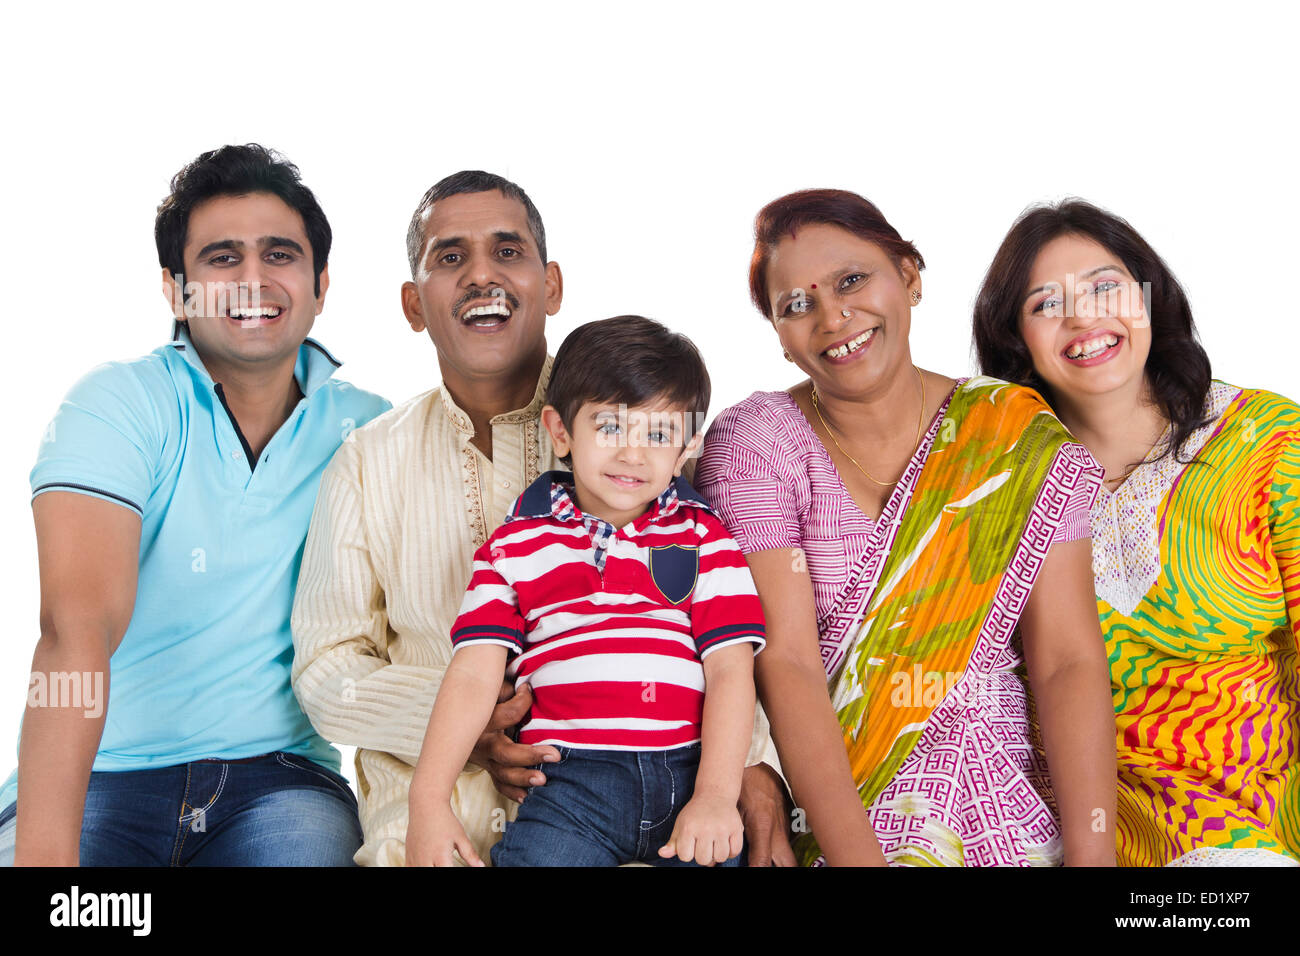 joint family hindi The topic for this lecture is meaning and introduction to the concept of hindu joint  familythe lecture starts with a brief history of hindi law in india, which dates.